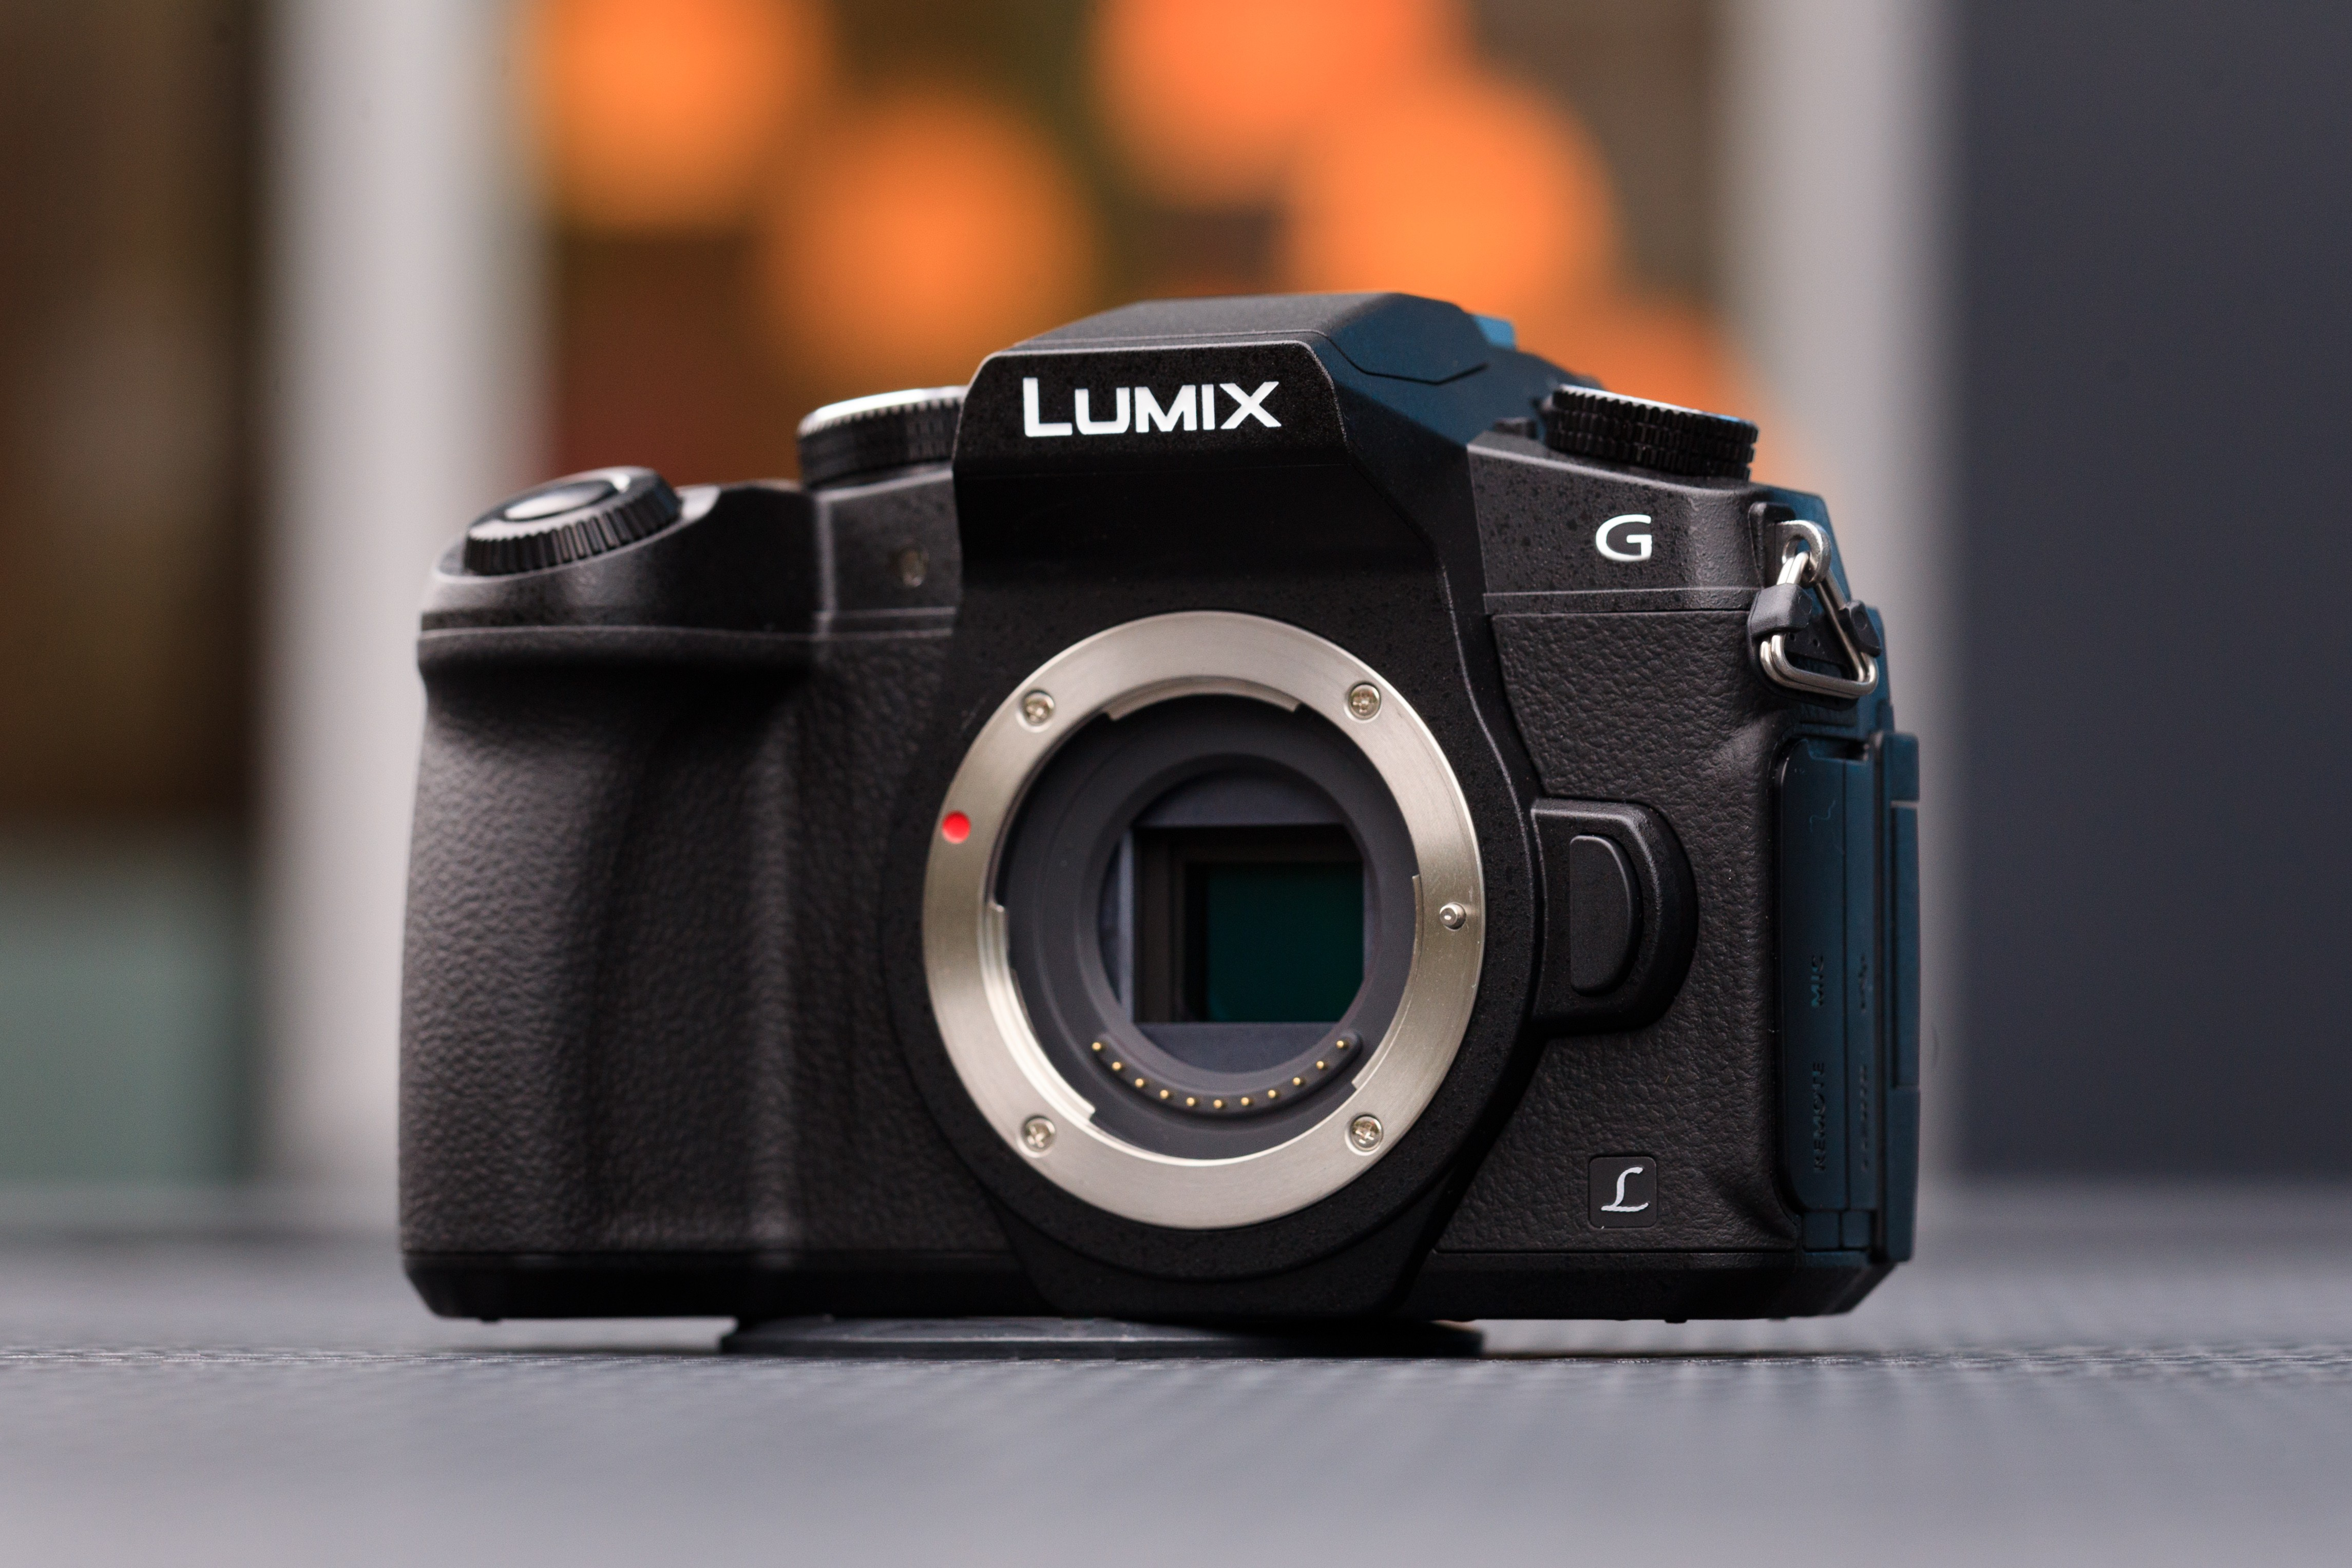 lumix camera hi tech - photo #9